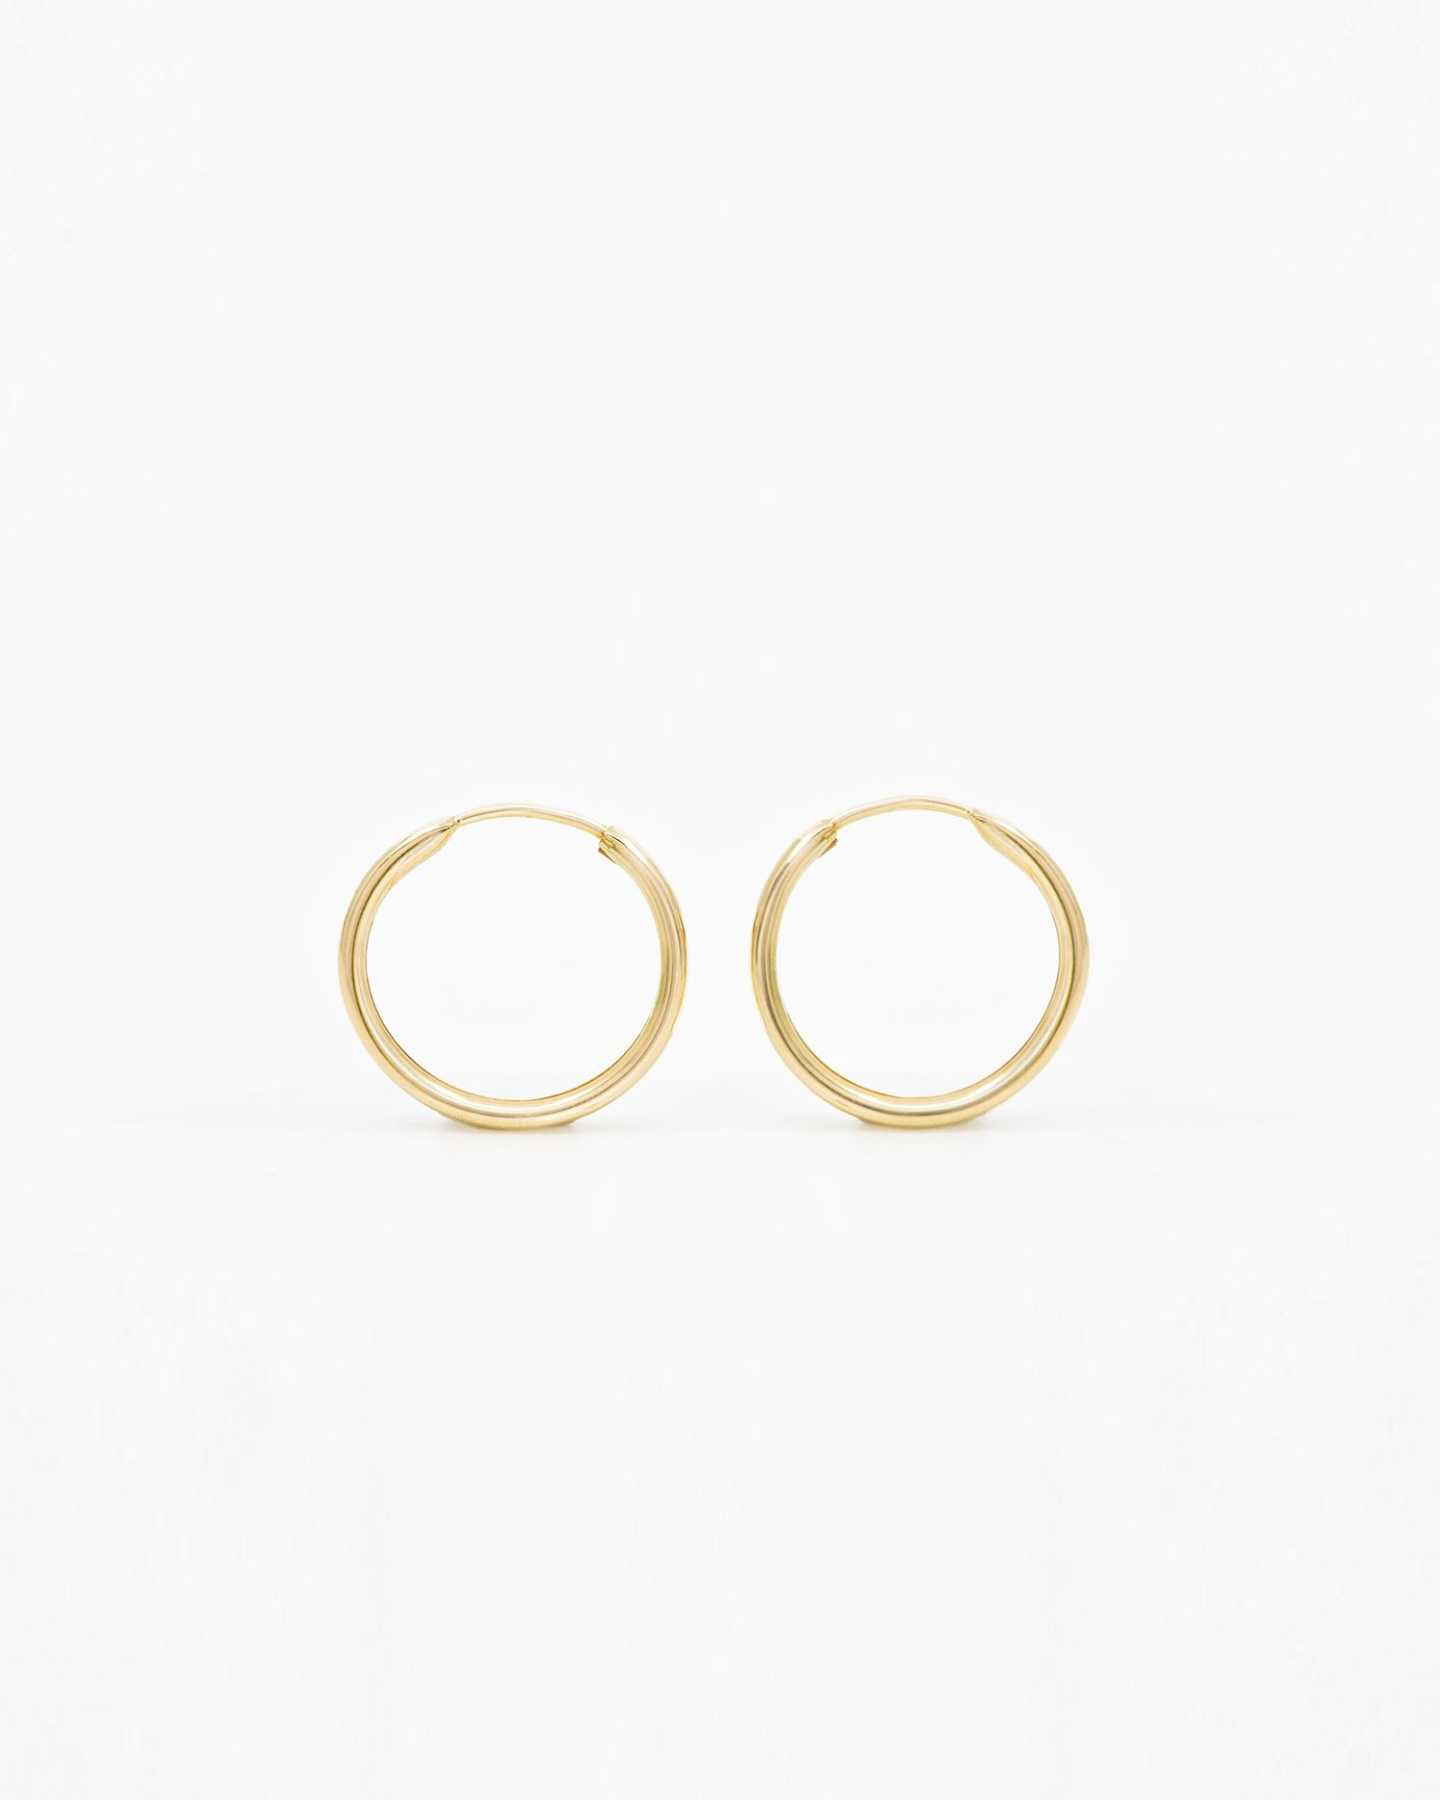 14k Gold Everyday 14mm Hoop Earrings - Yellow Gold